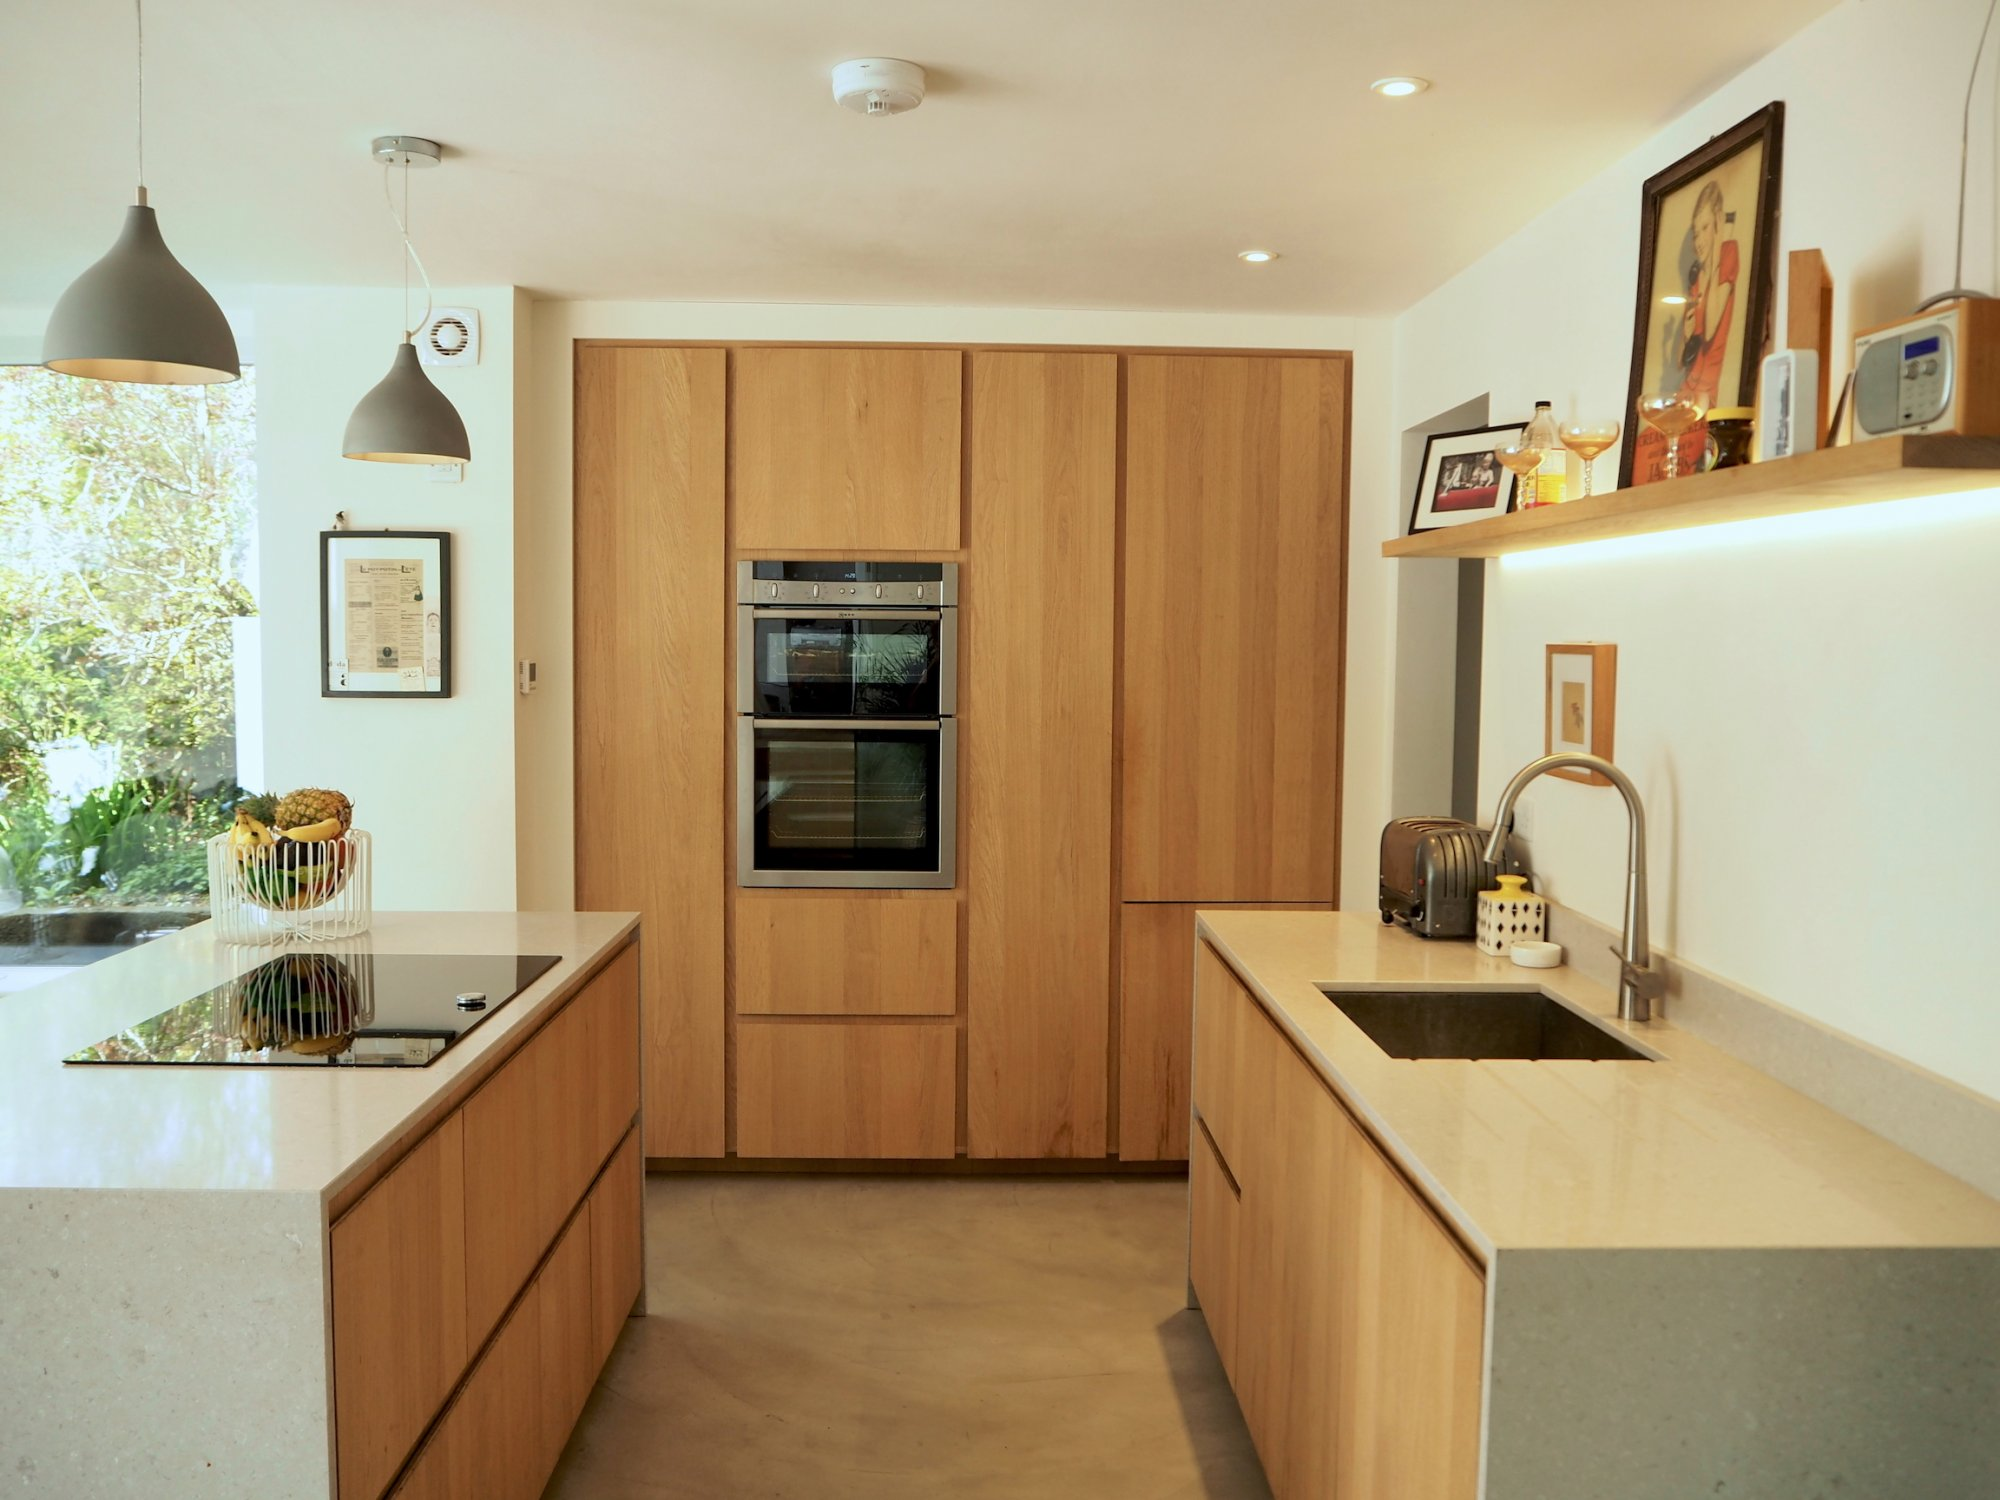 Kitchens brighton covering east and west sussex the for Kitchen design specialists colorado springs